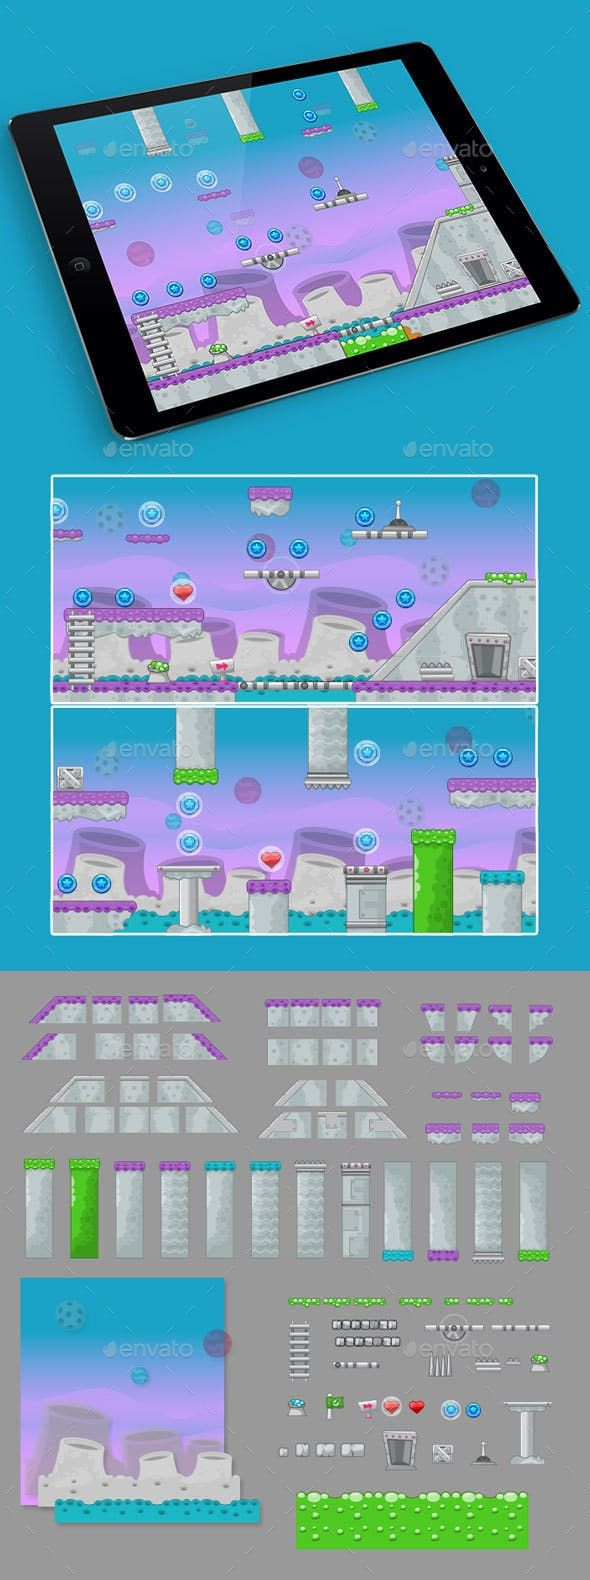 2D Spacial Game Platformer Tilesets in 2020 (With images